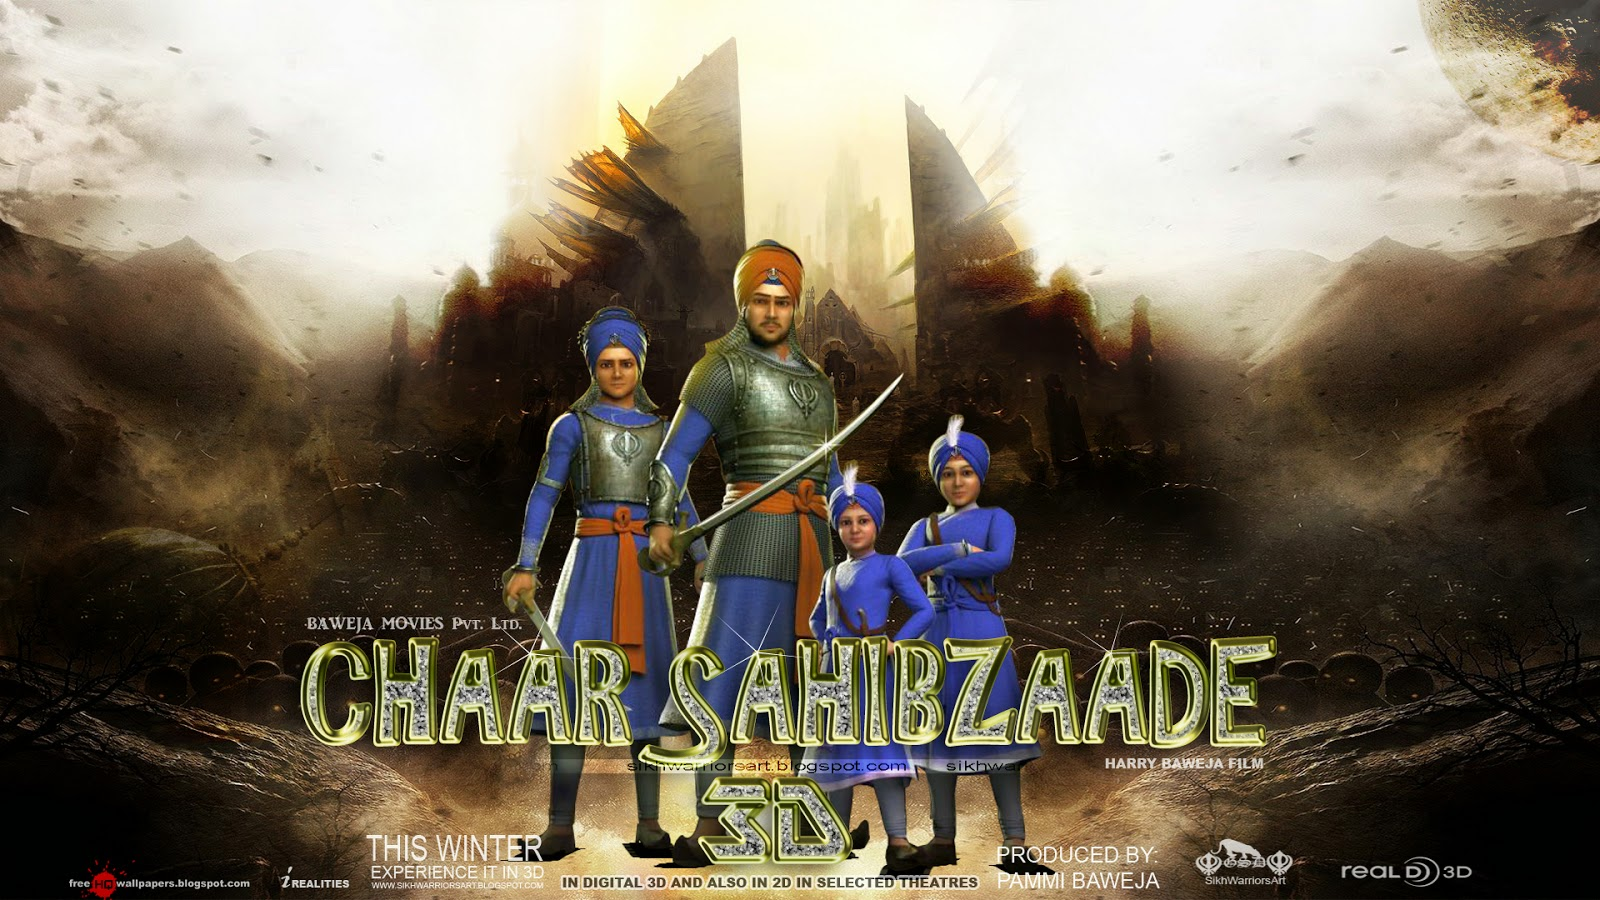 Sikh Animated Wallpaper Sikh Warriors Chaar Sahibzaade 3d Hd Movie Wallpapers